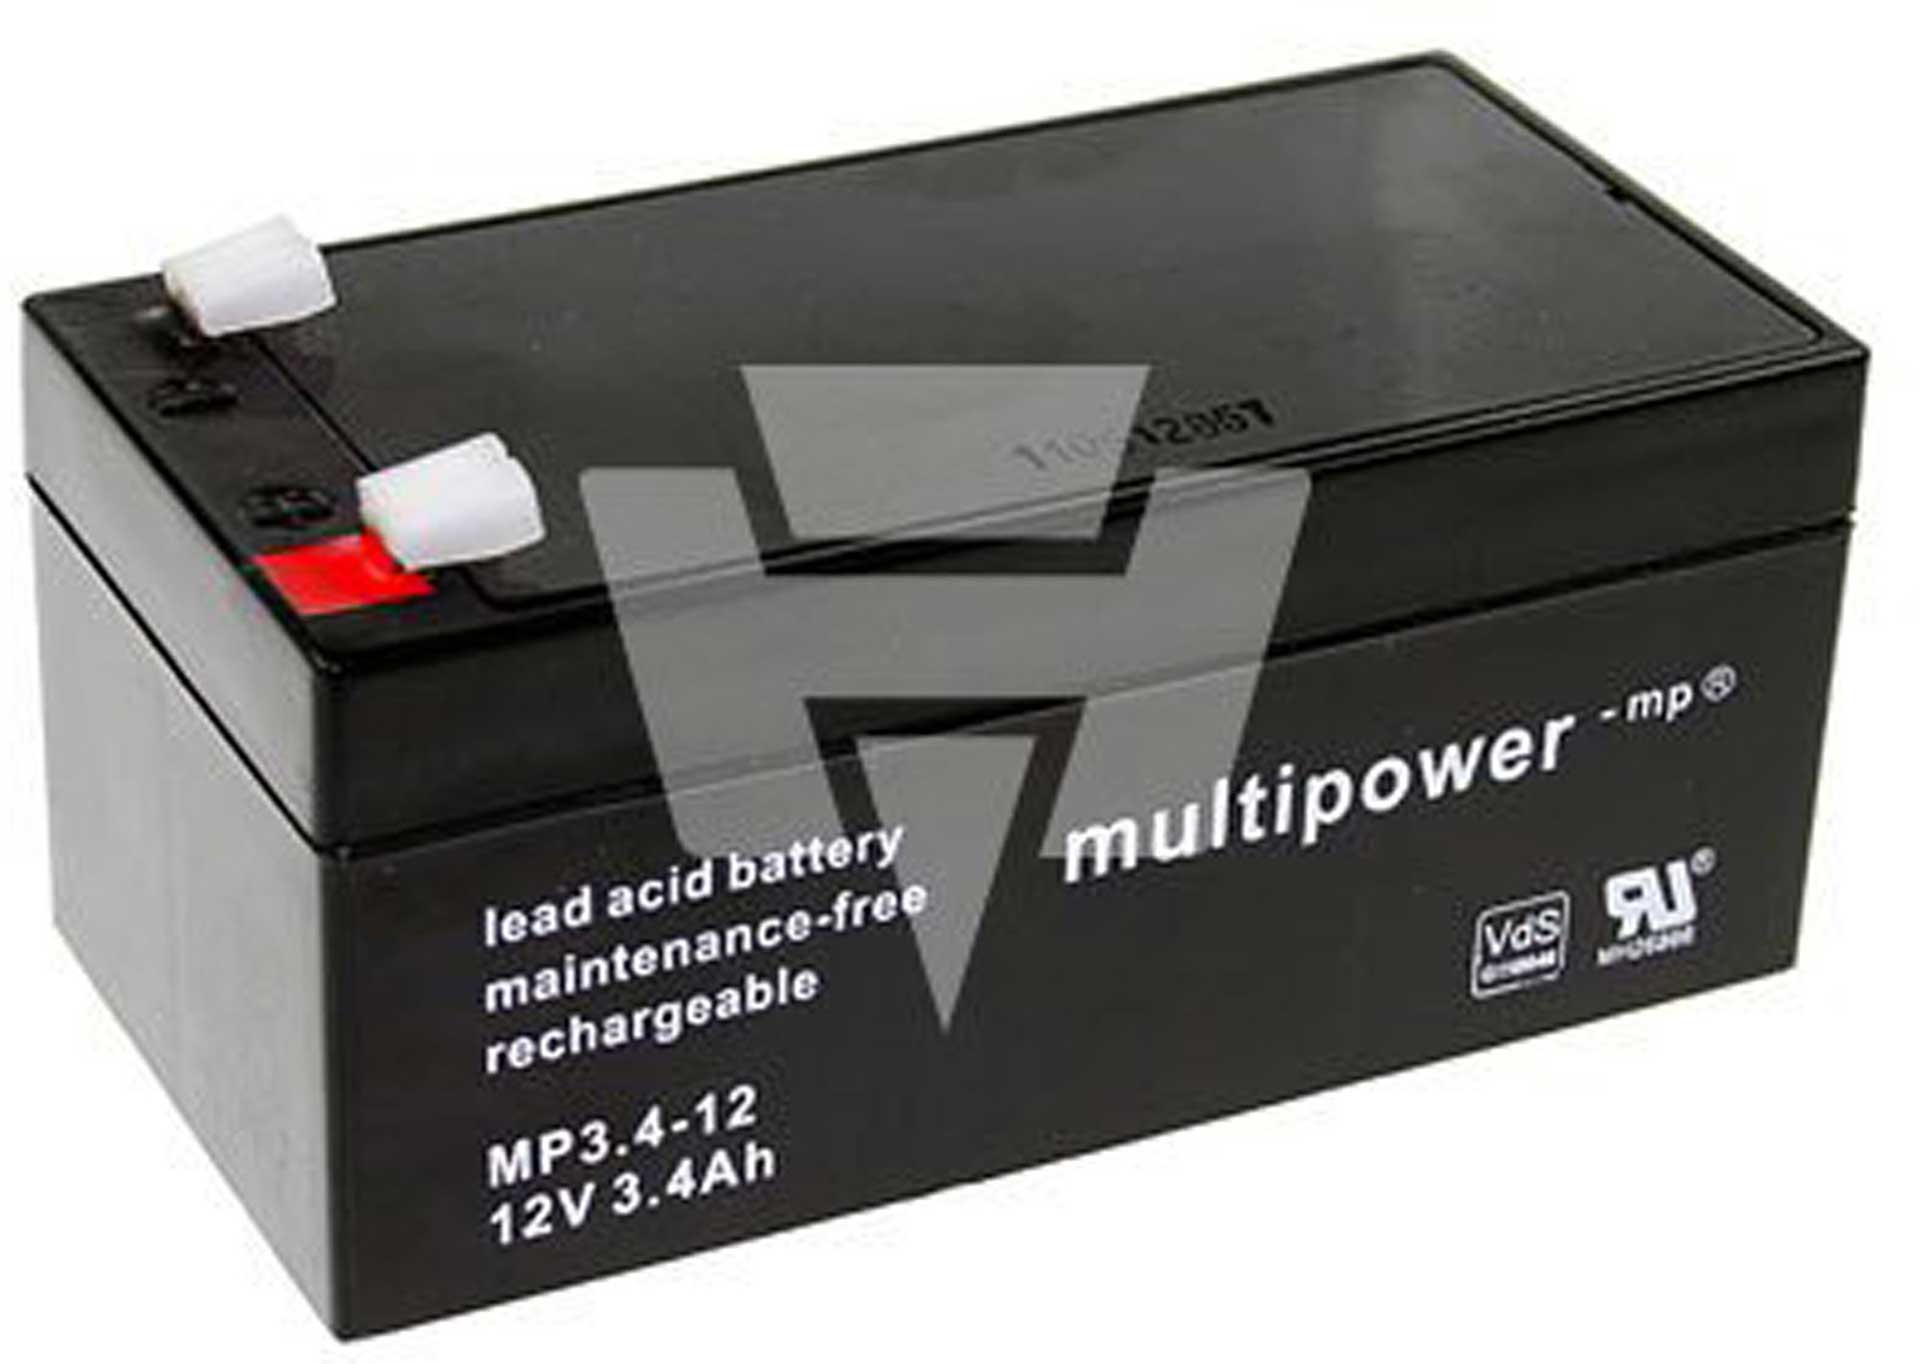 MULTIPOWER Lead acid battery MP3, 4-12 PB12V 3,4AH